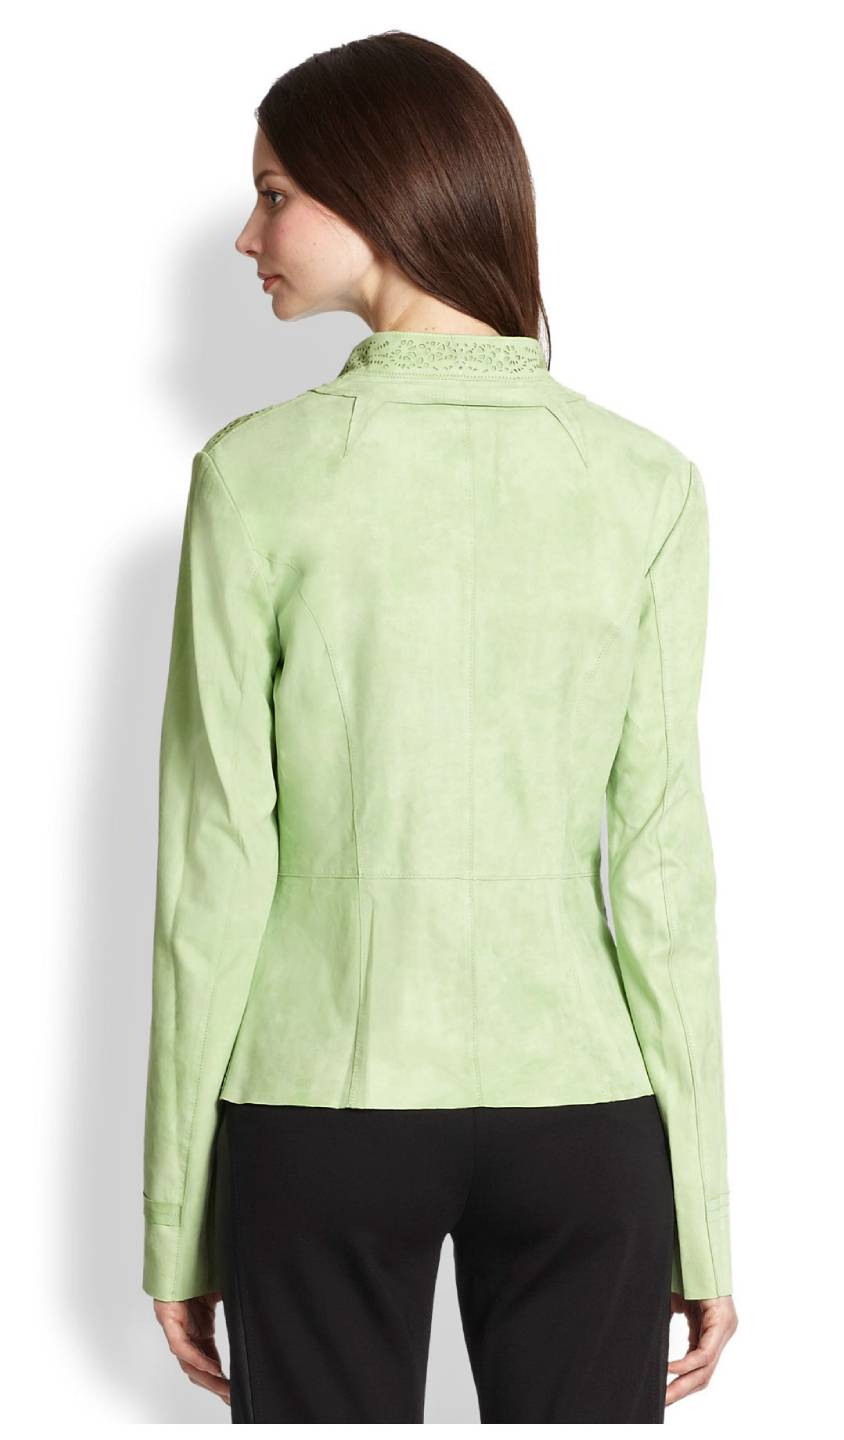 Elie Tahari Lime Green Laser Cut Perforated Leather